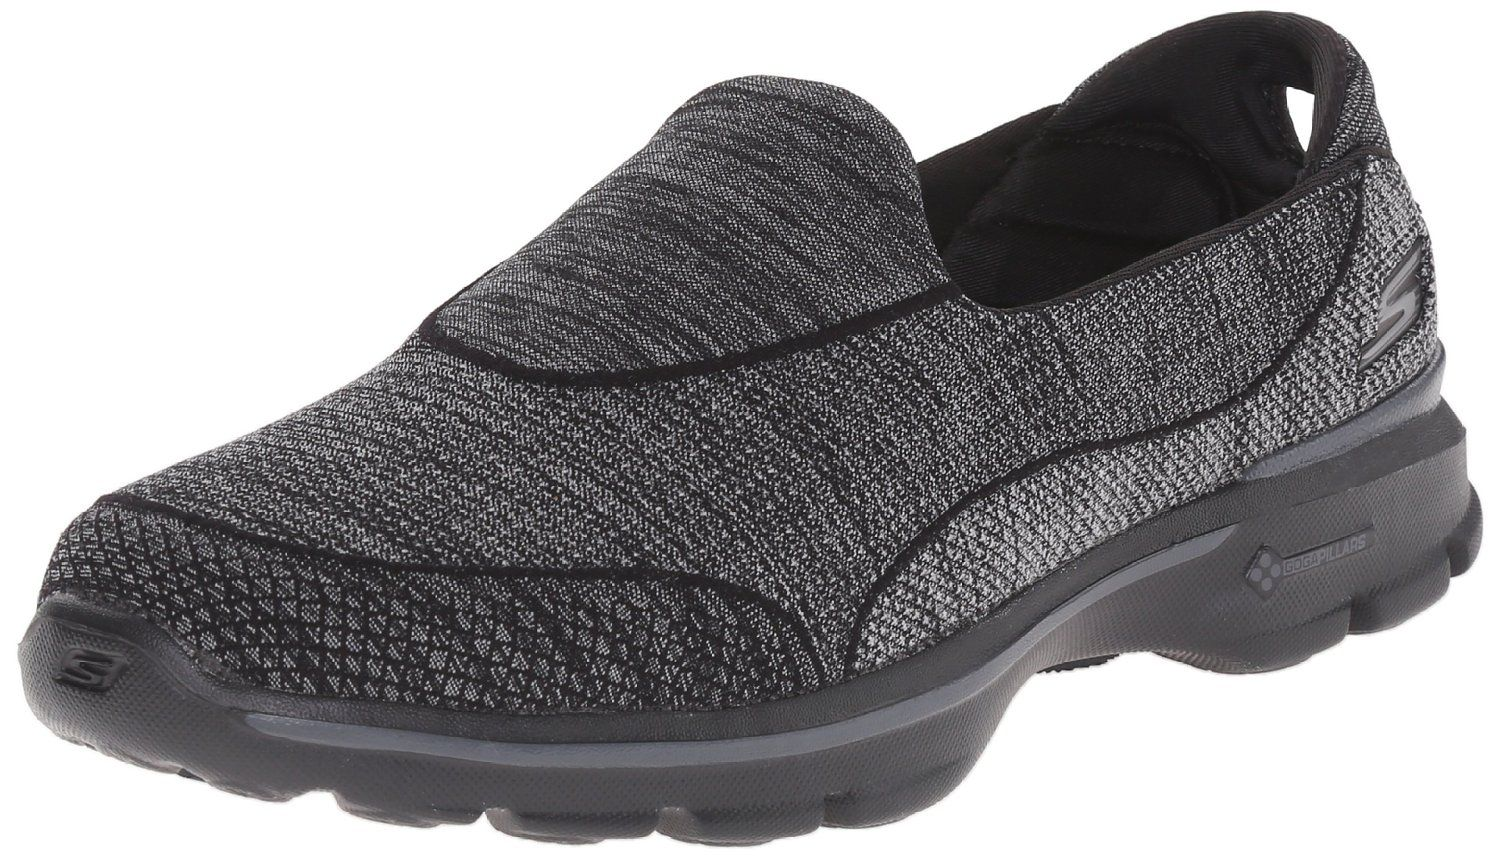 Skechers Damen GO Walk 3 Super Sock 3 Sneakers, Schwarz (Bbk), 35 EU -  Skechers schuhe (*Partner-Link)